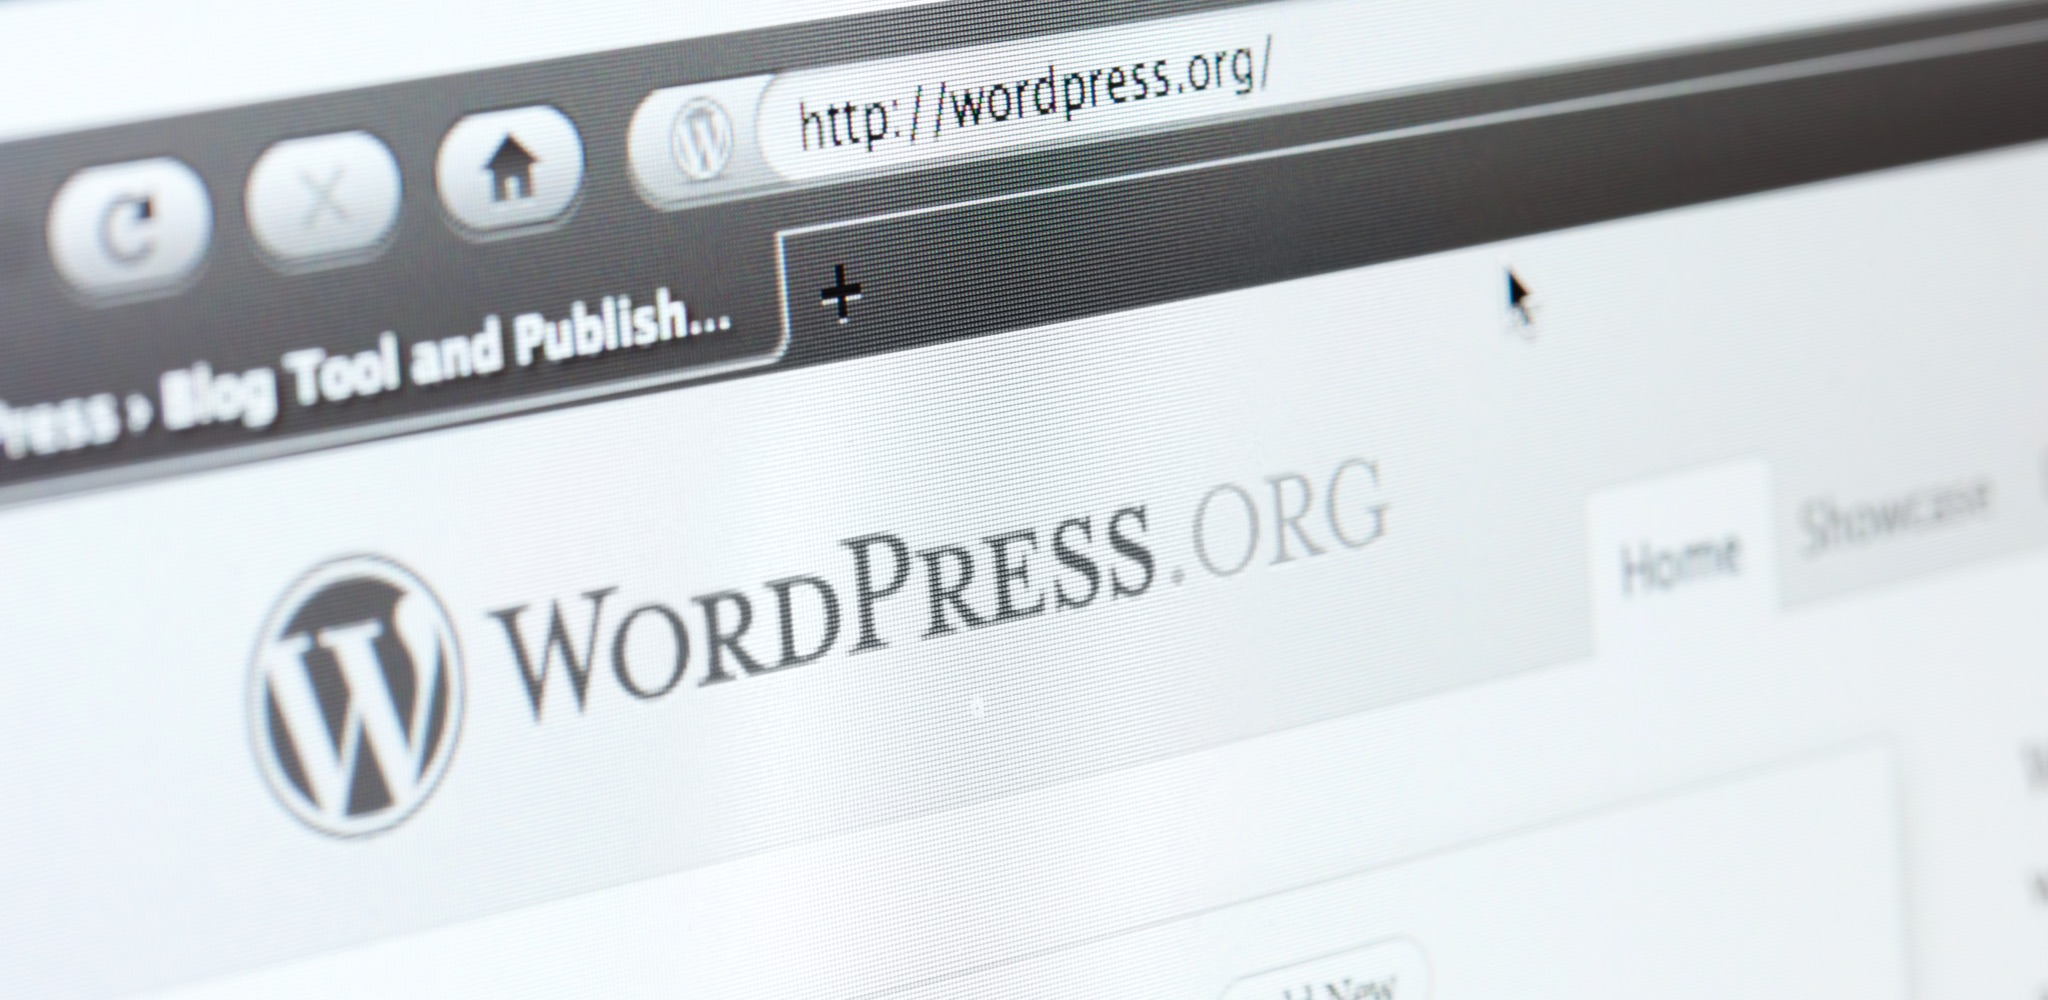 Wordpress Web Page. WordPress is a website that will help you develop a website or blog.